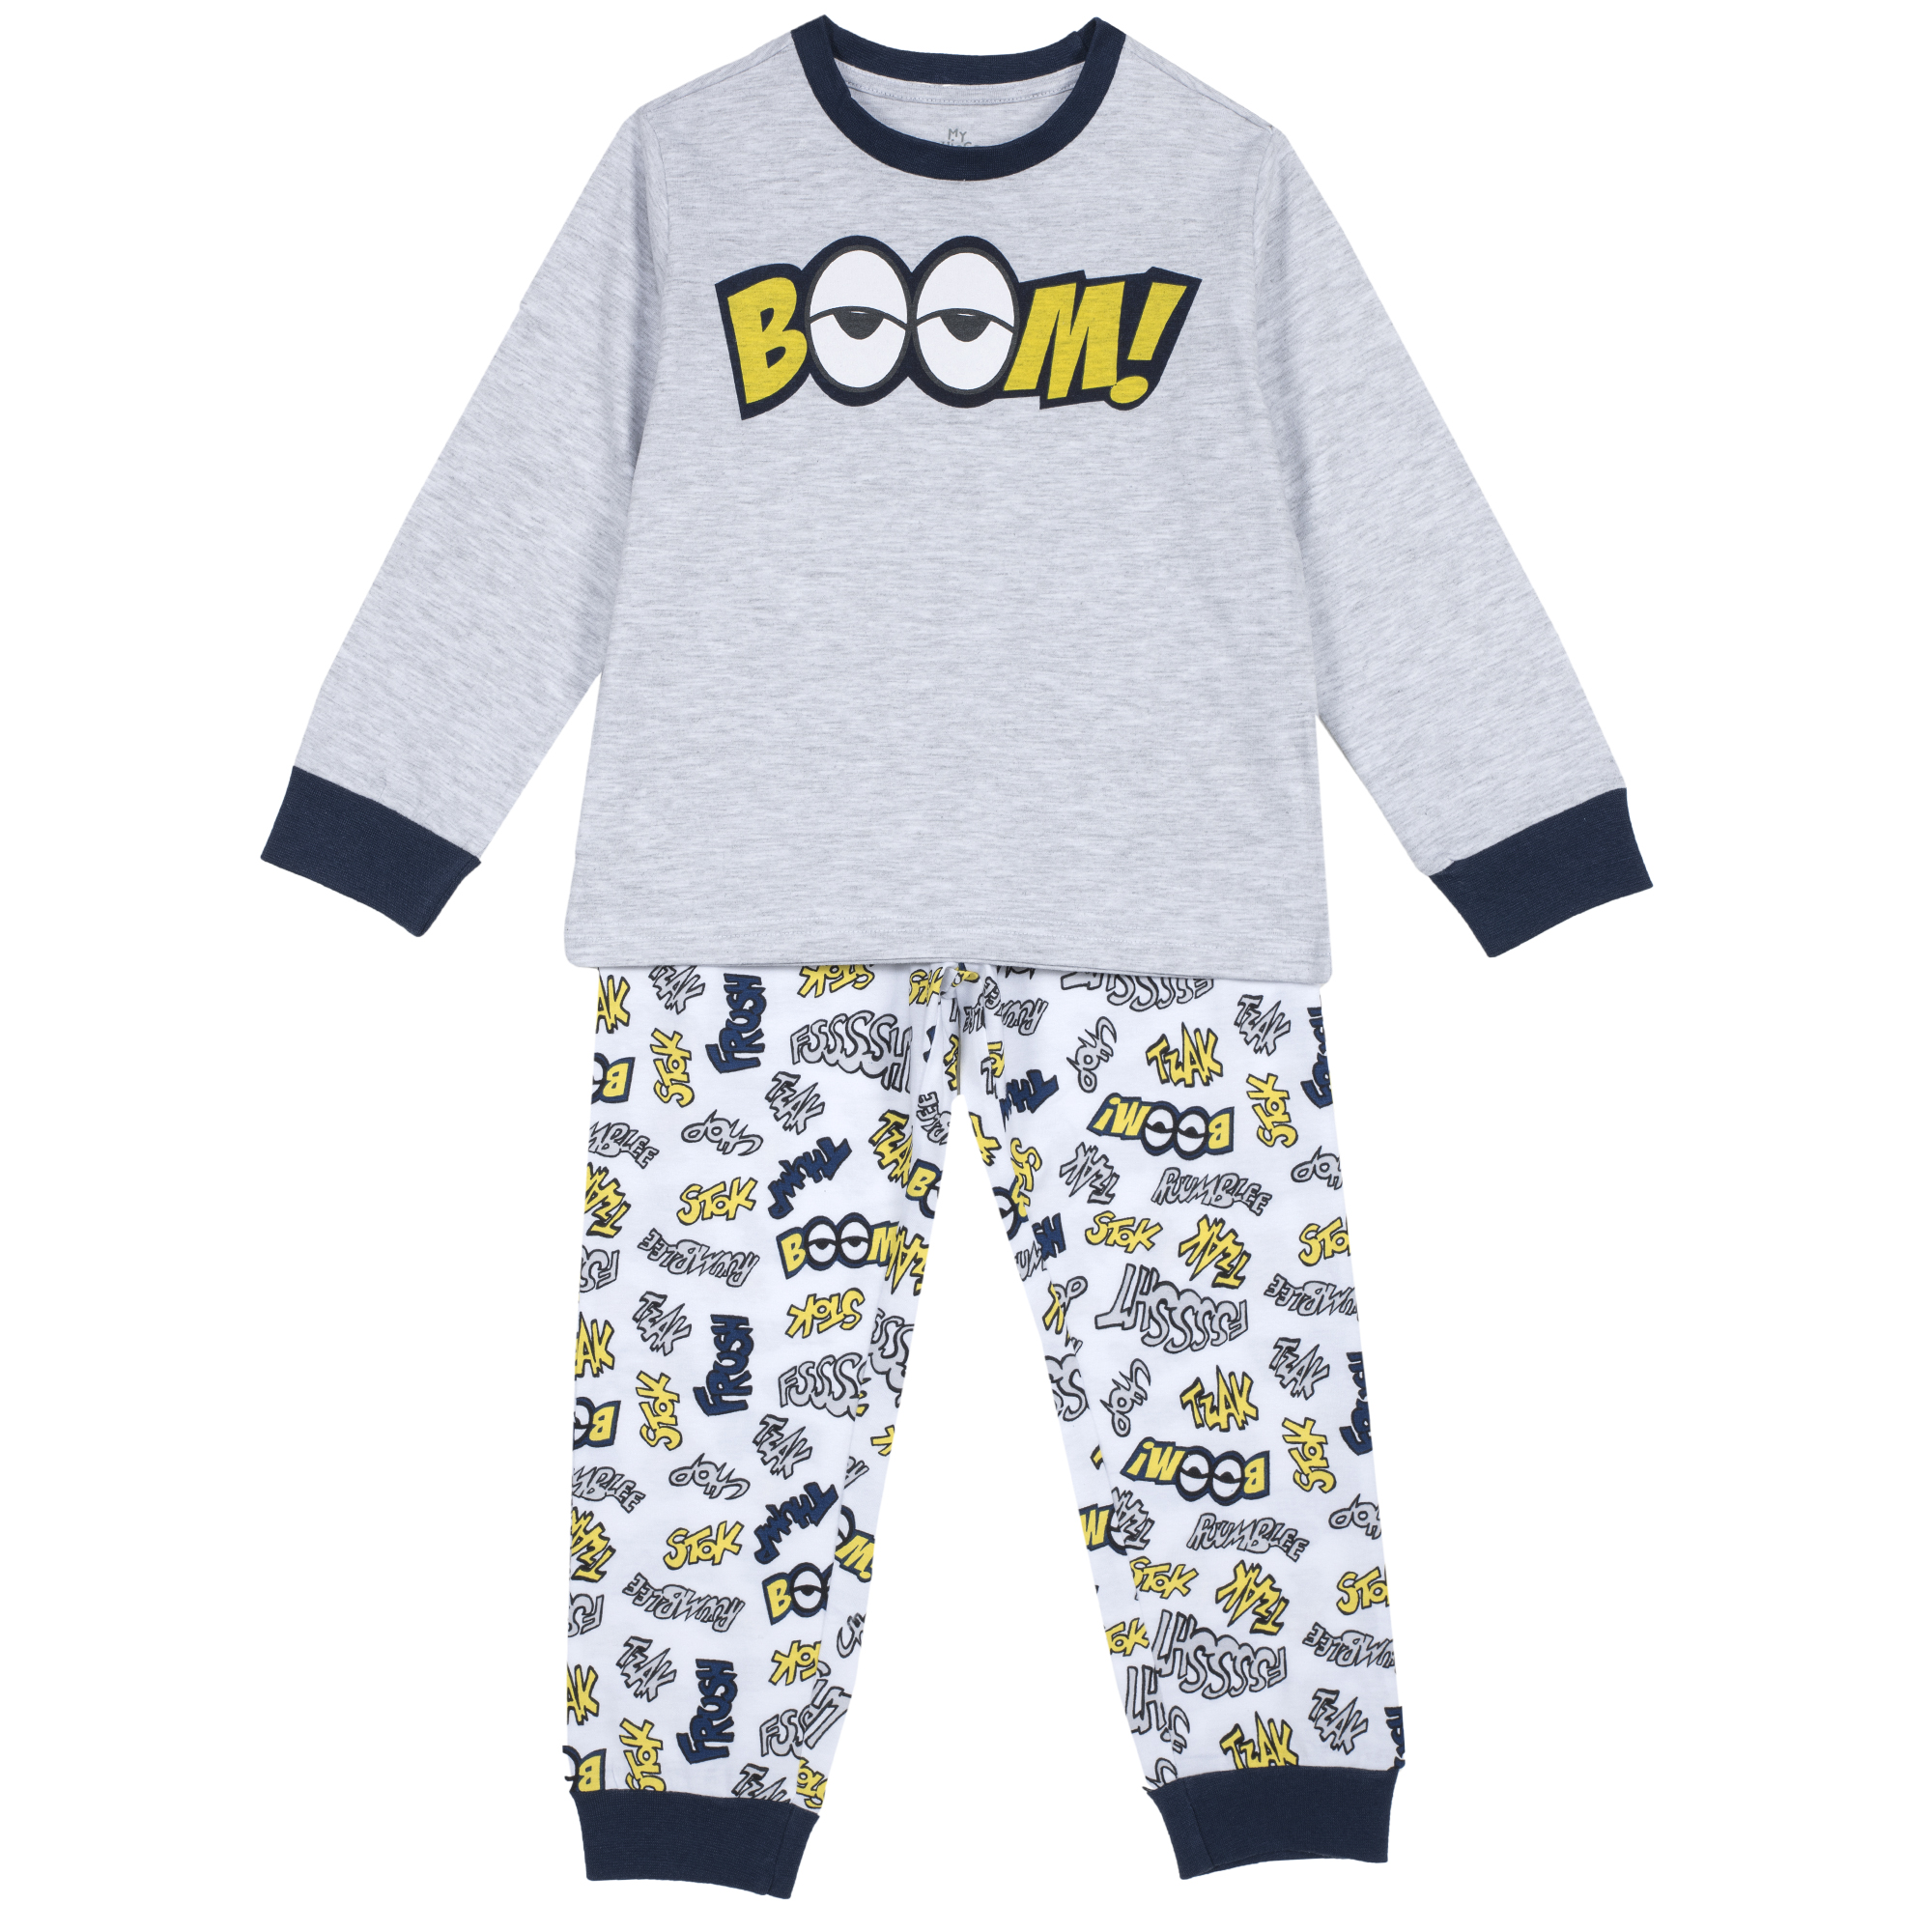 Pijama copii Chicco, maneca lunga, gri deschis, 31258 din categoria Pijamale copii